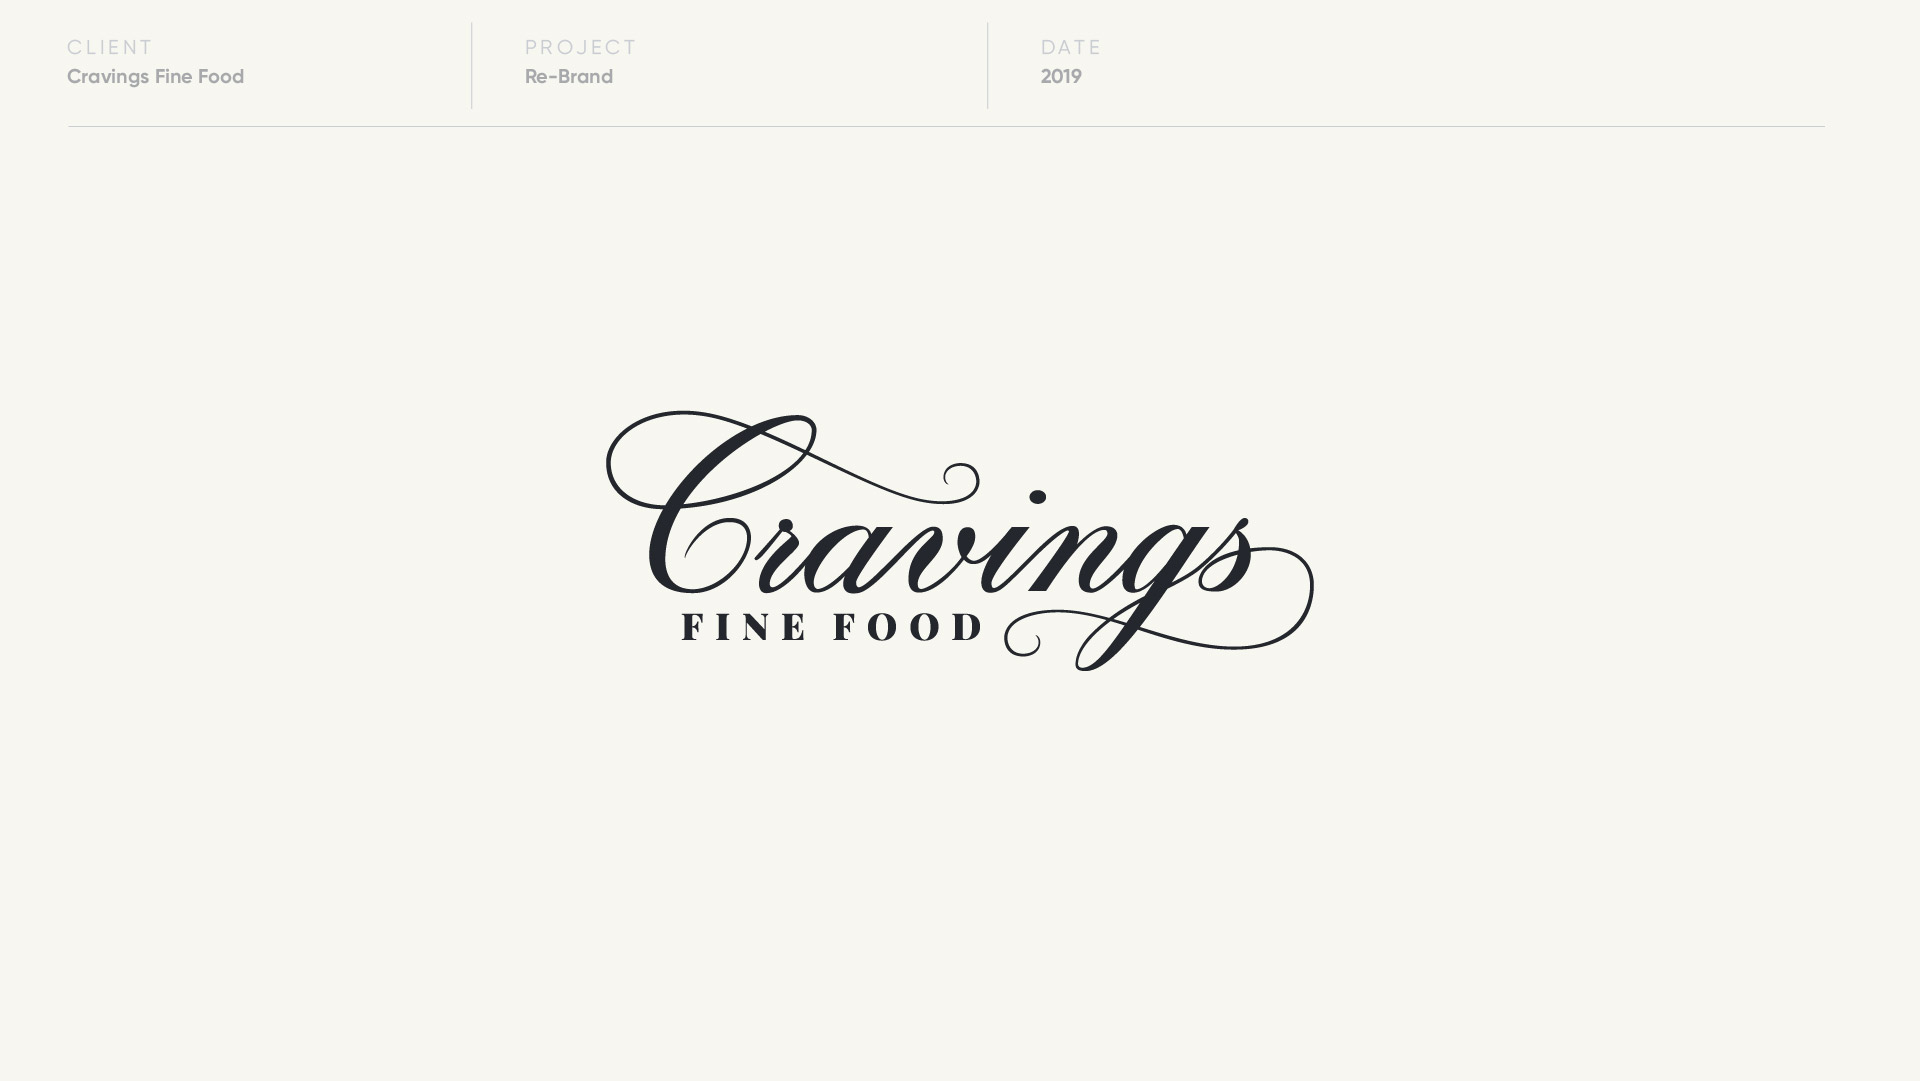 cravings fine food logo design by anthony mika